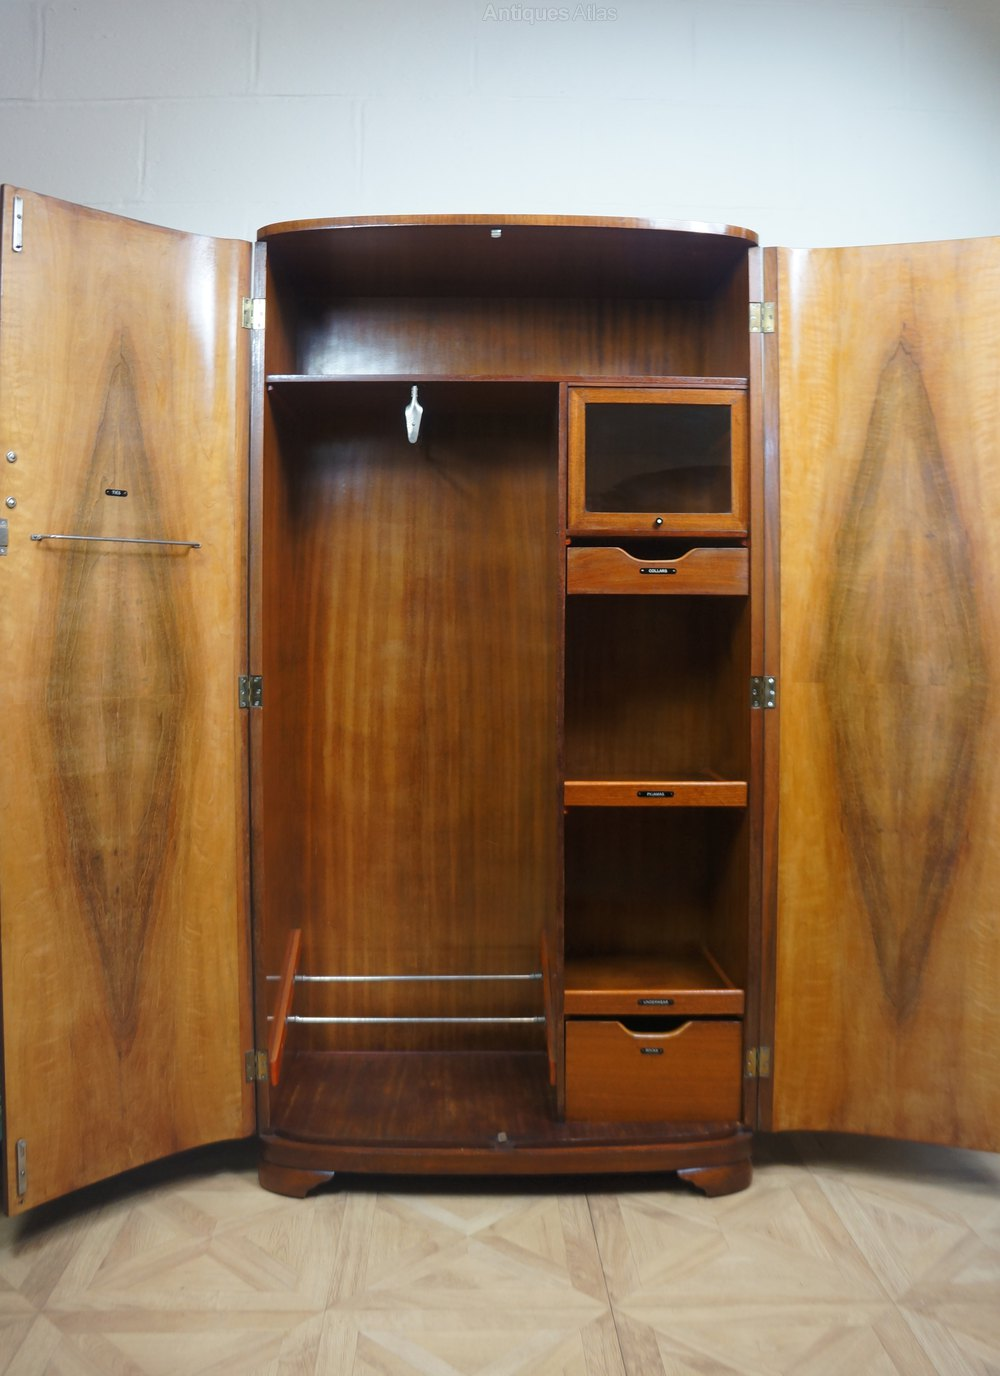 Armoires Gentlemans C1930s Art Deco Odeon Wardrobe - Antiques Atlas